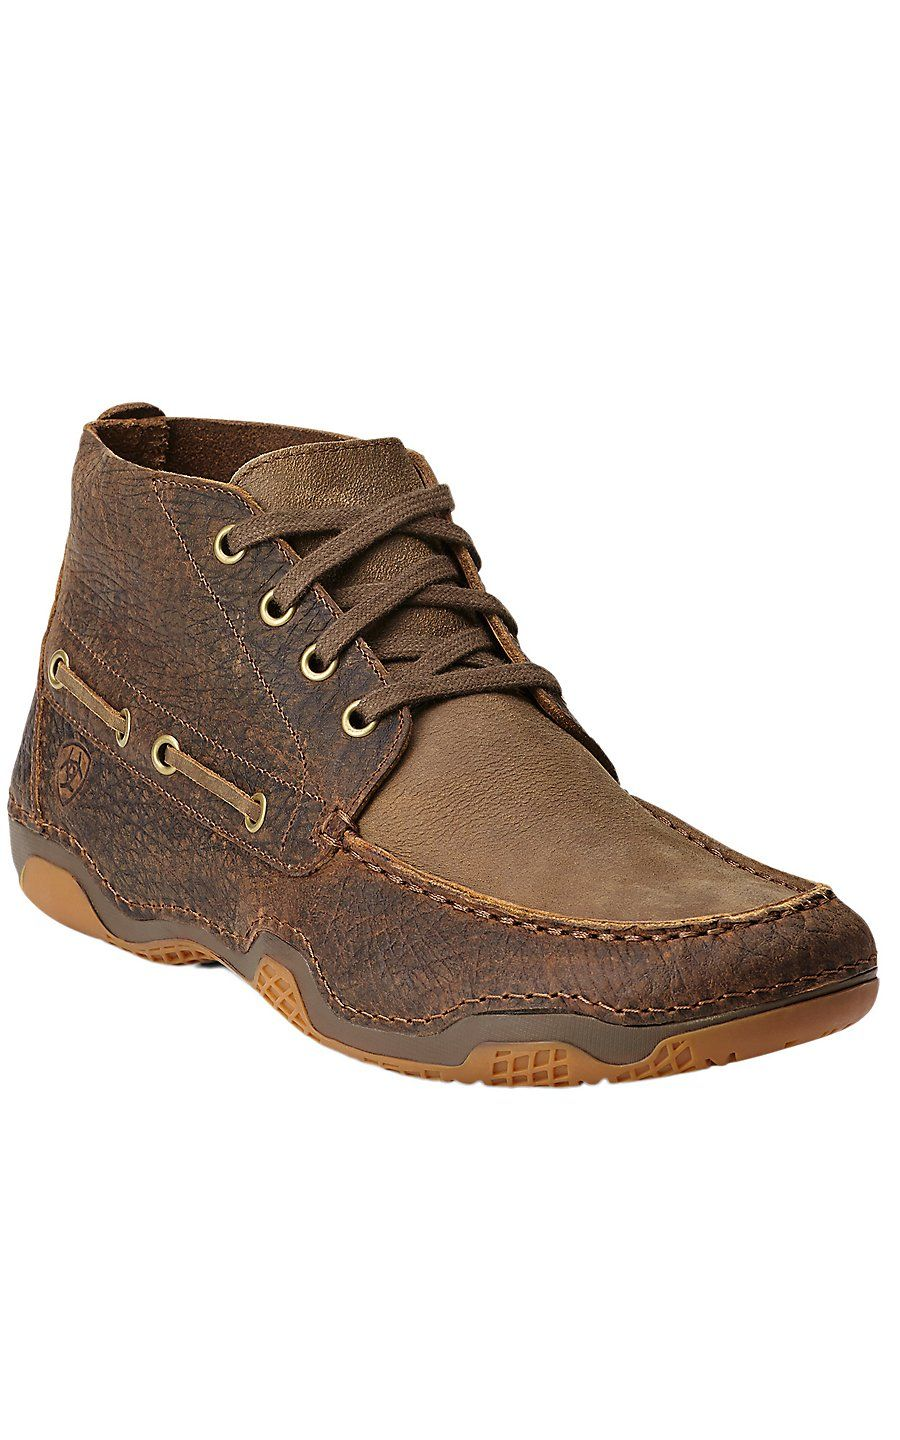 Casual shoes, Mens casual shoes